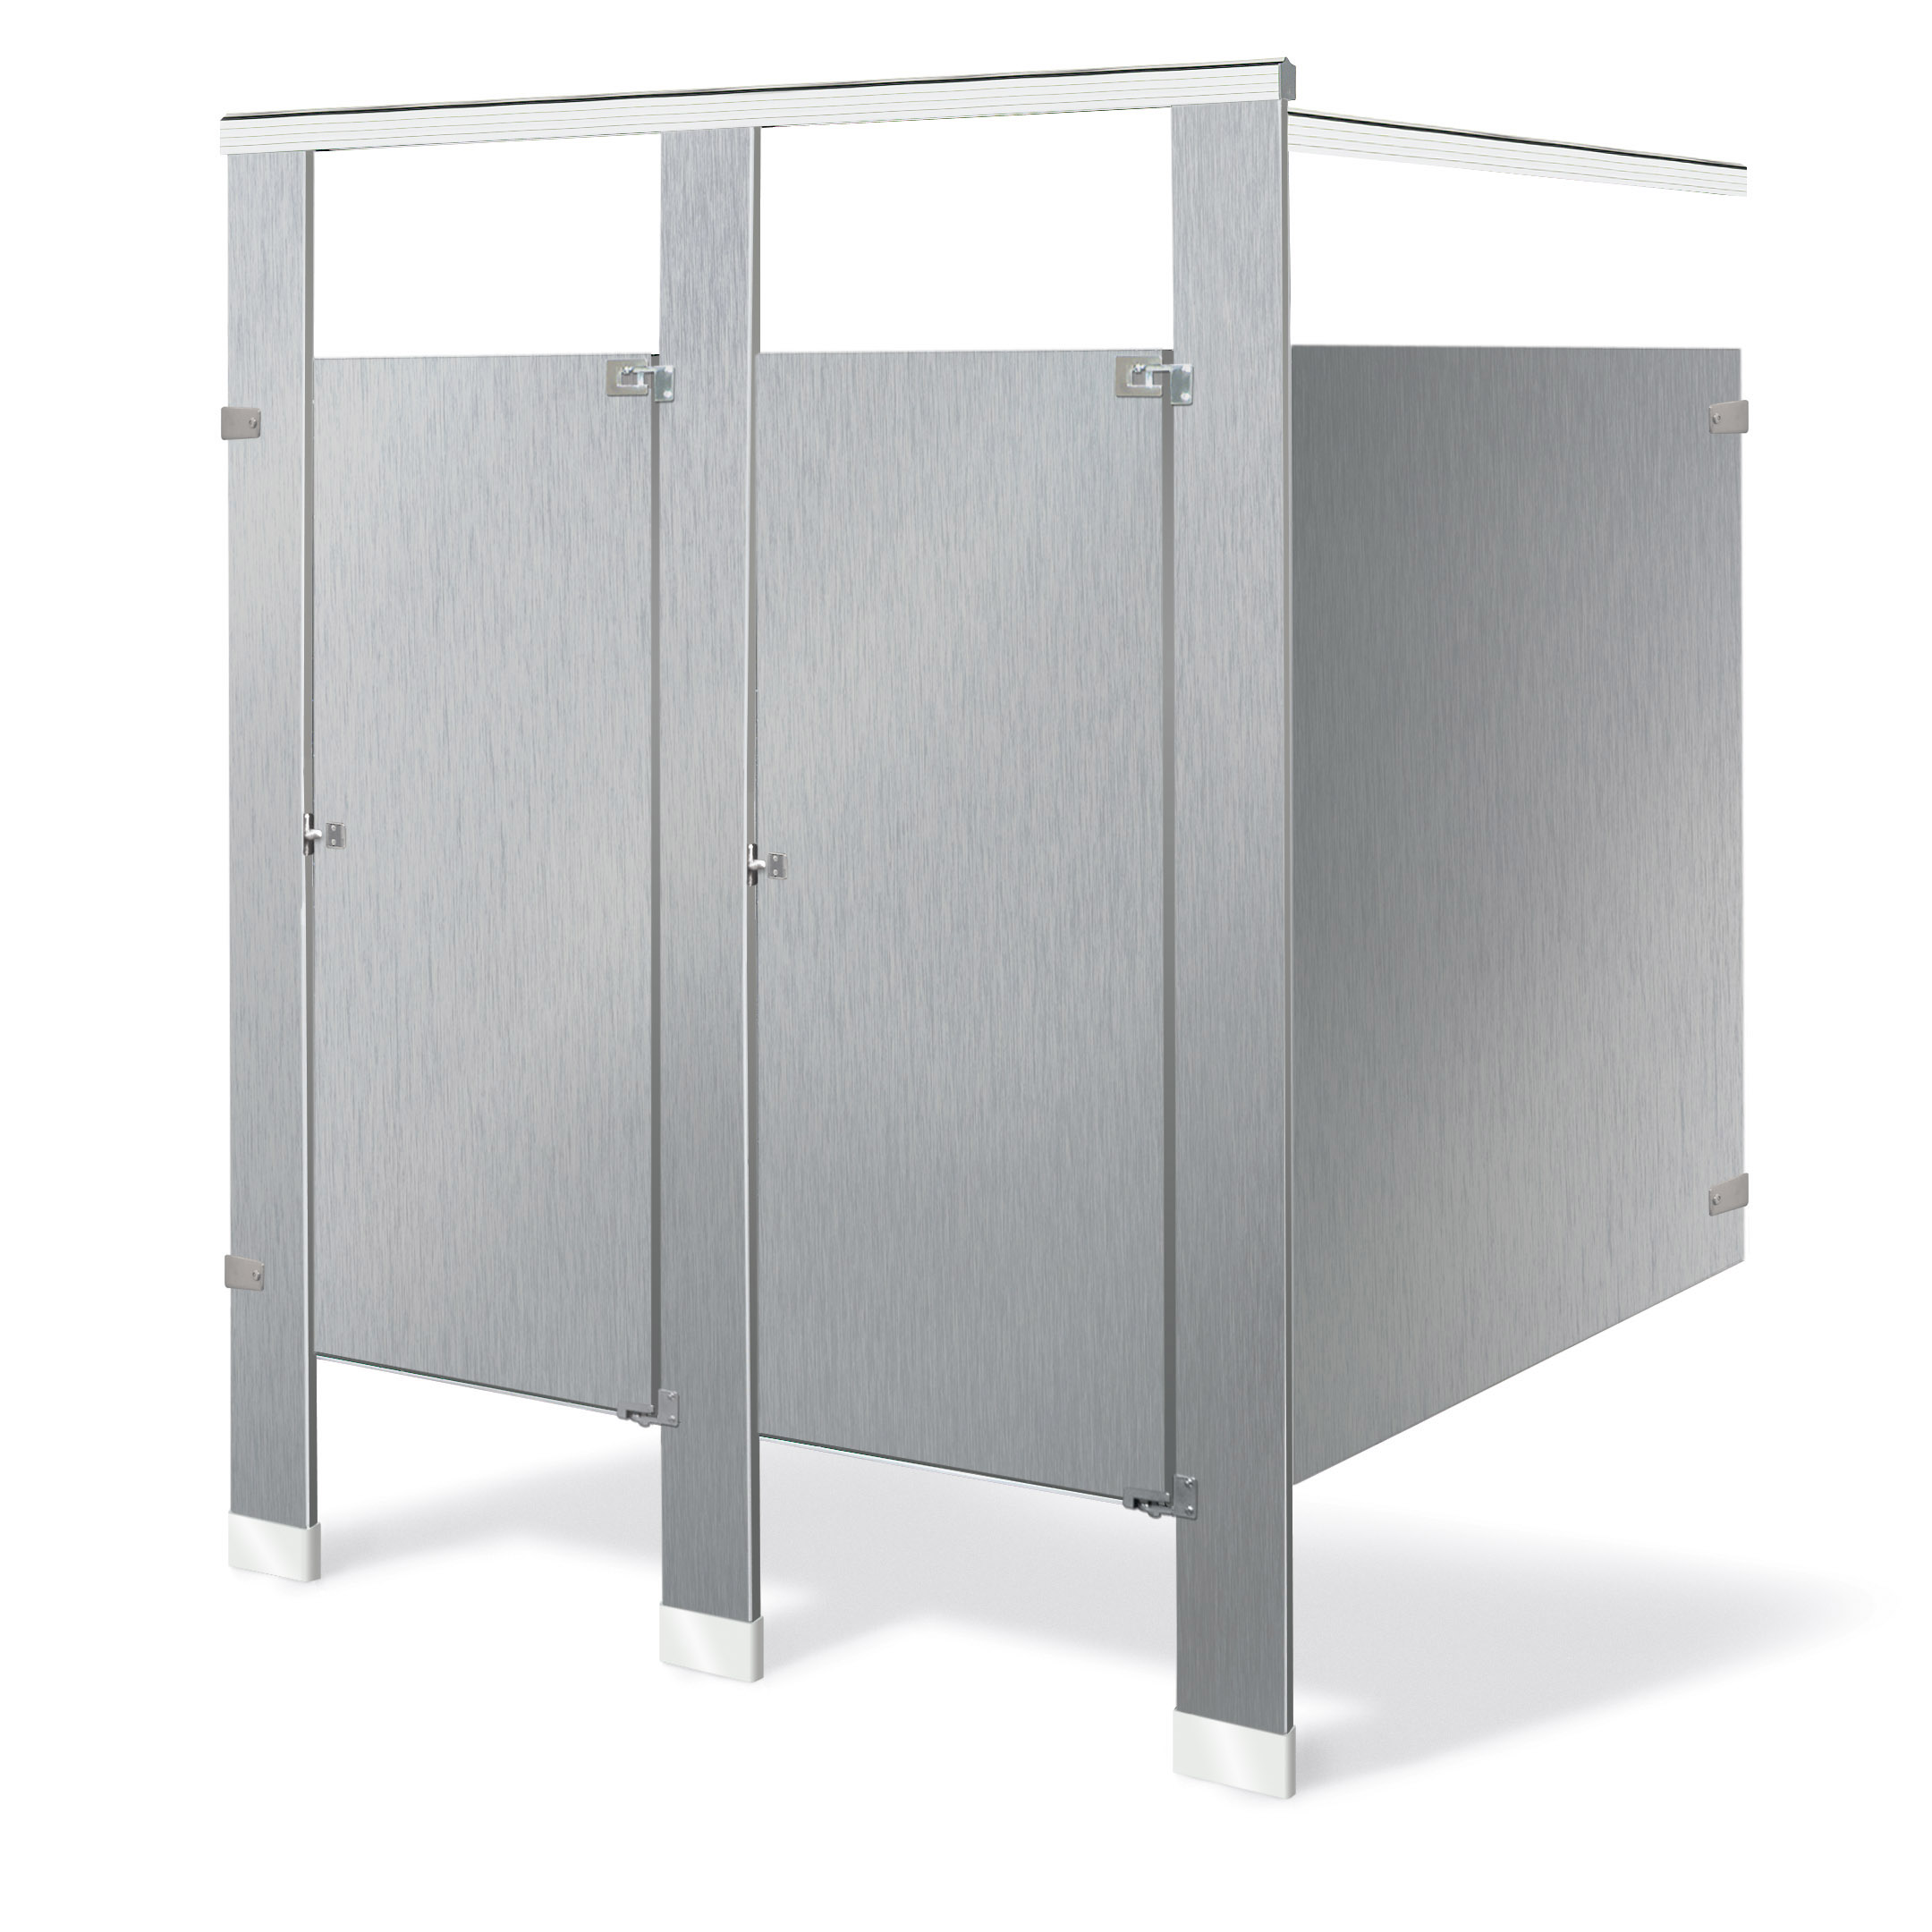 Sentinel™ Floor Mounted  Overhead Braced. Series 400 Toilet Partitions